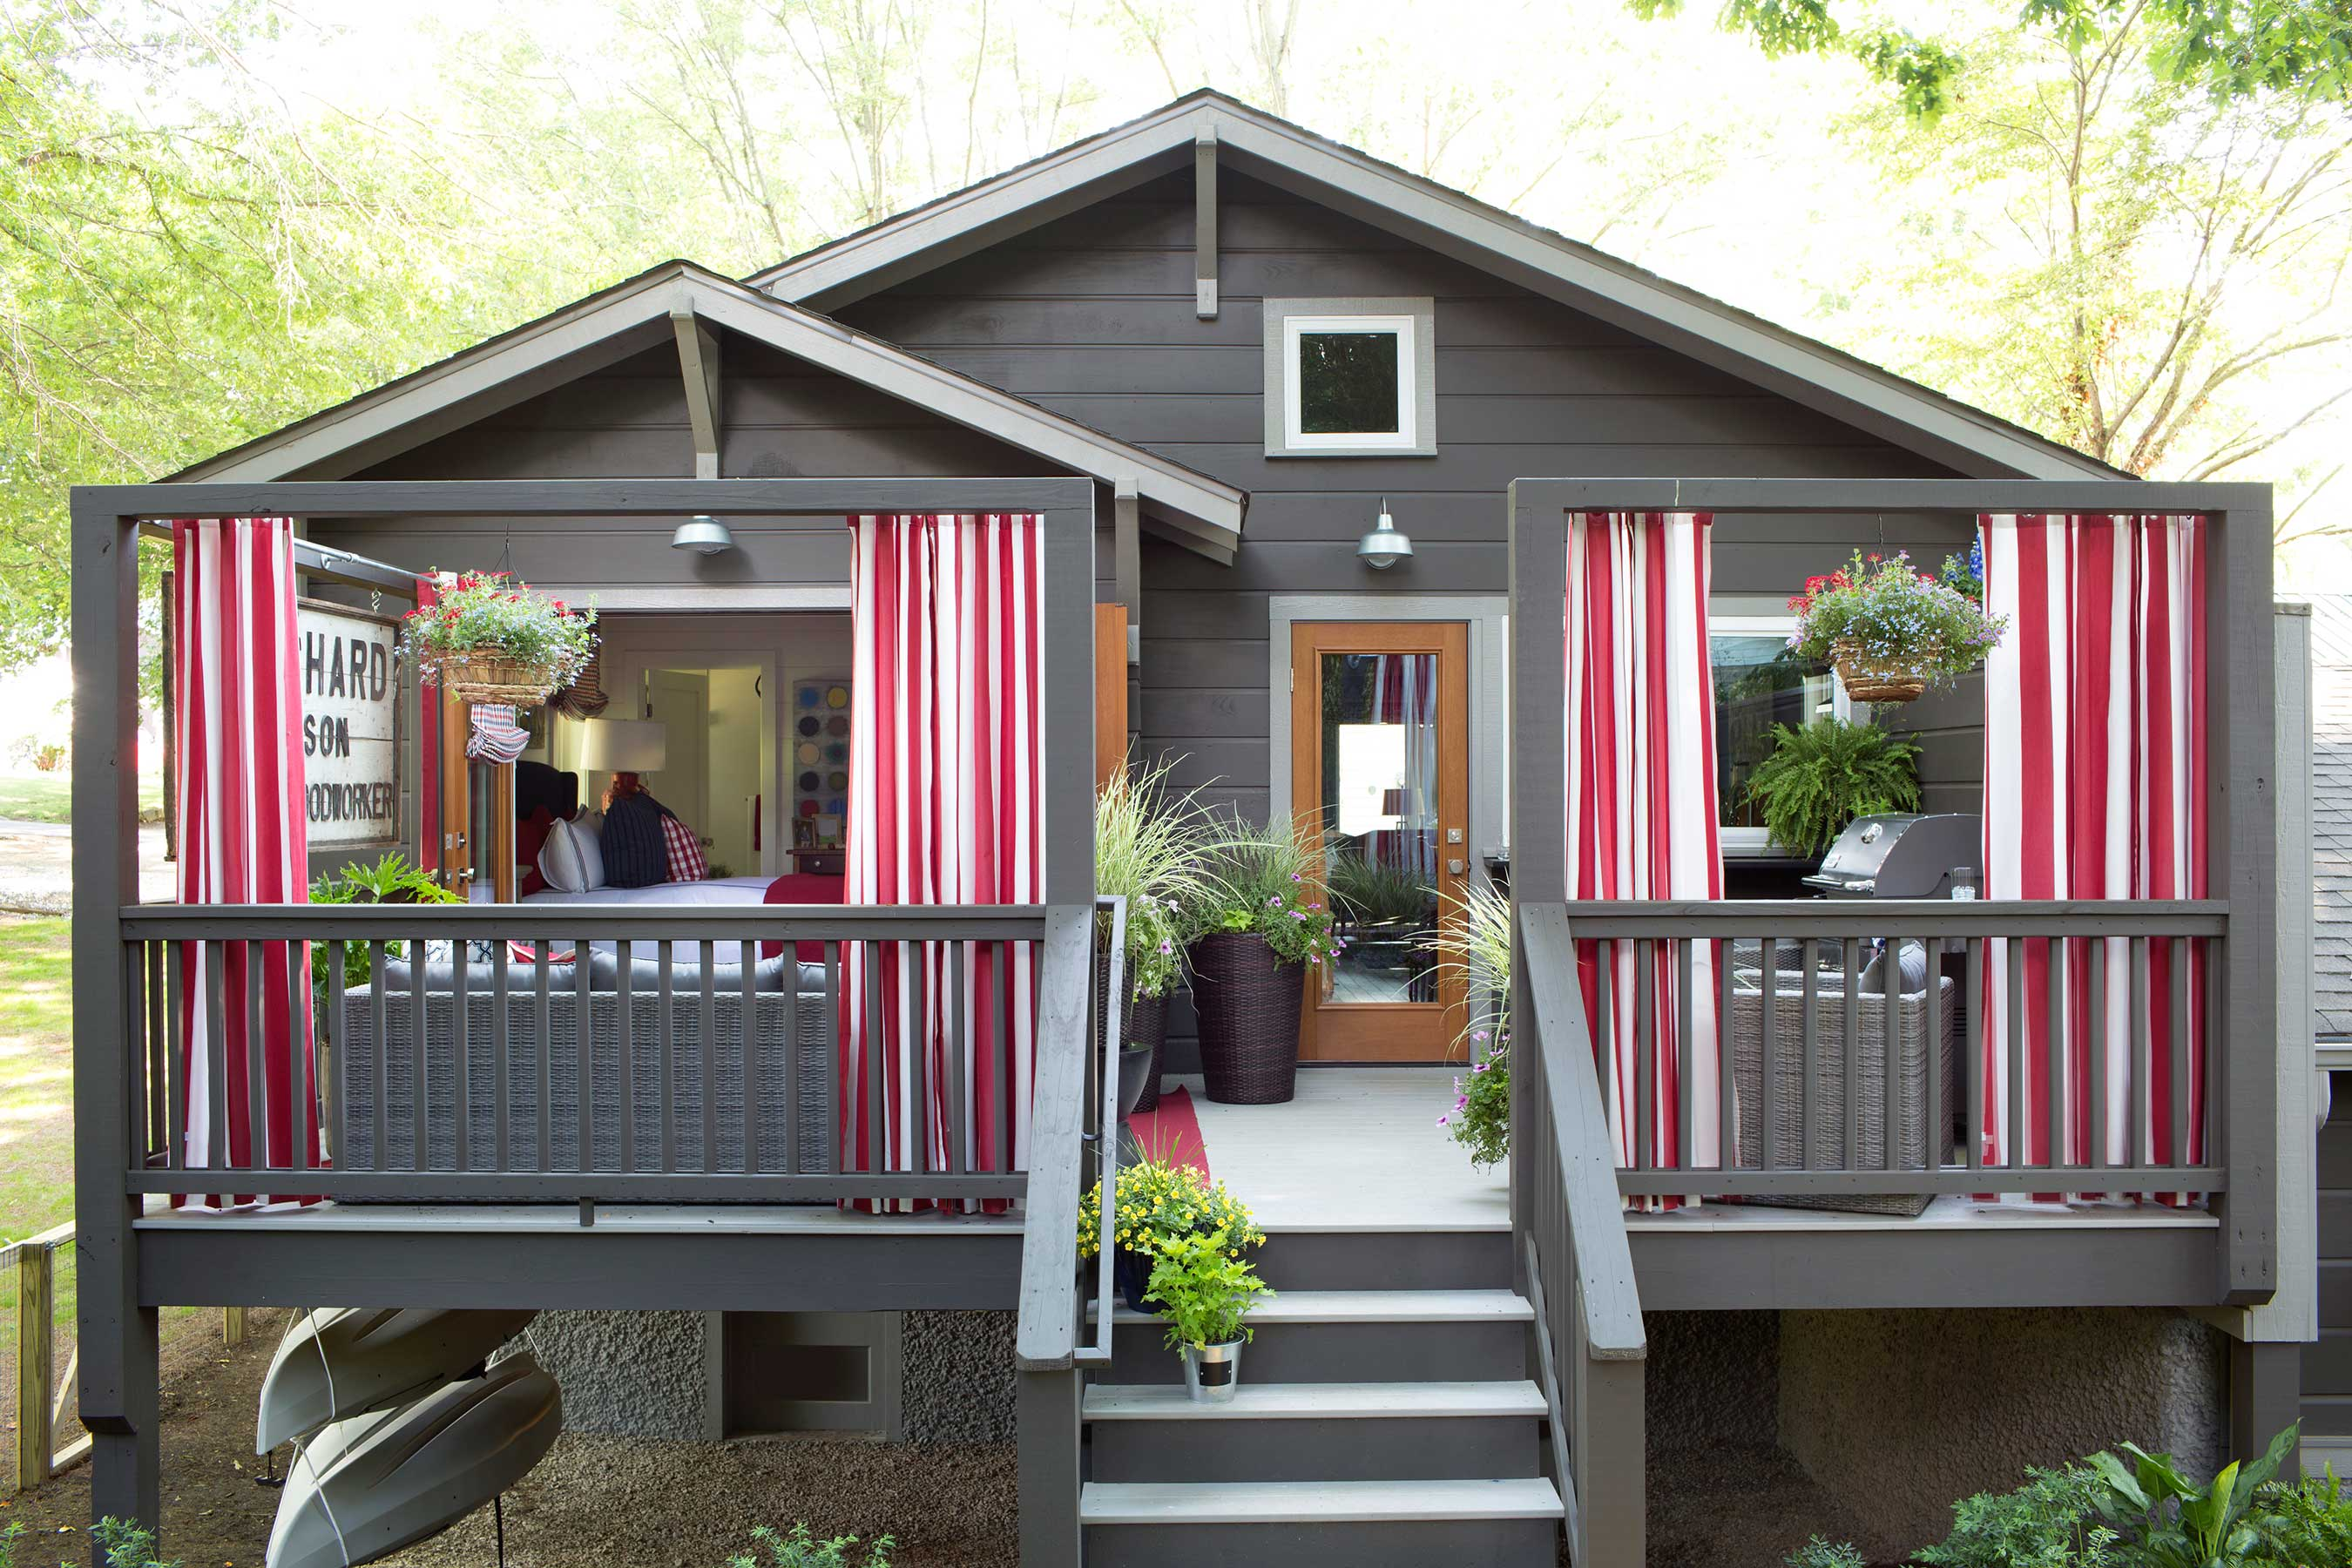 Hgtv Urban Oasis Giveaway 2015 Now Open For Entries